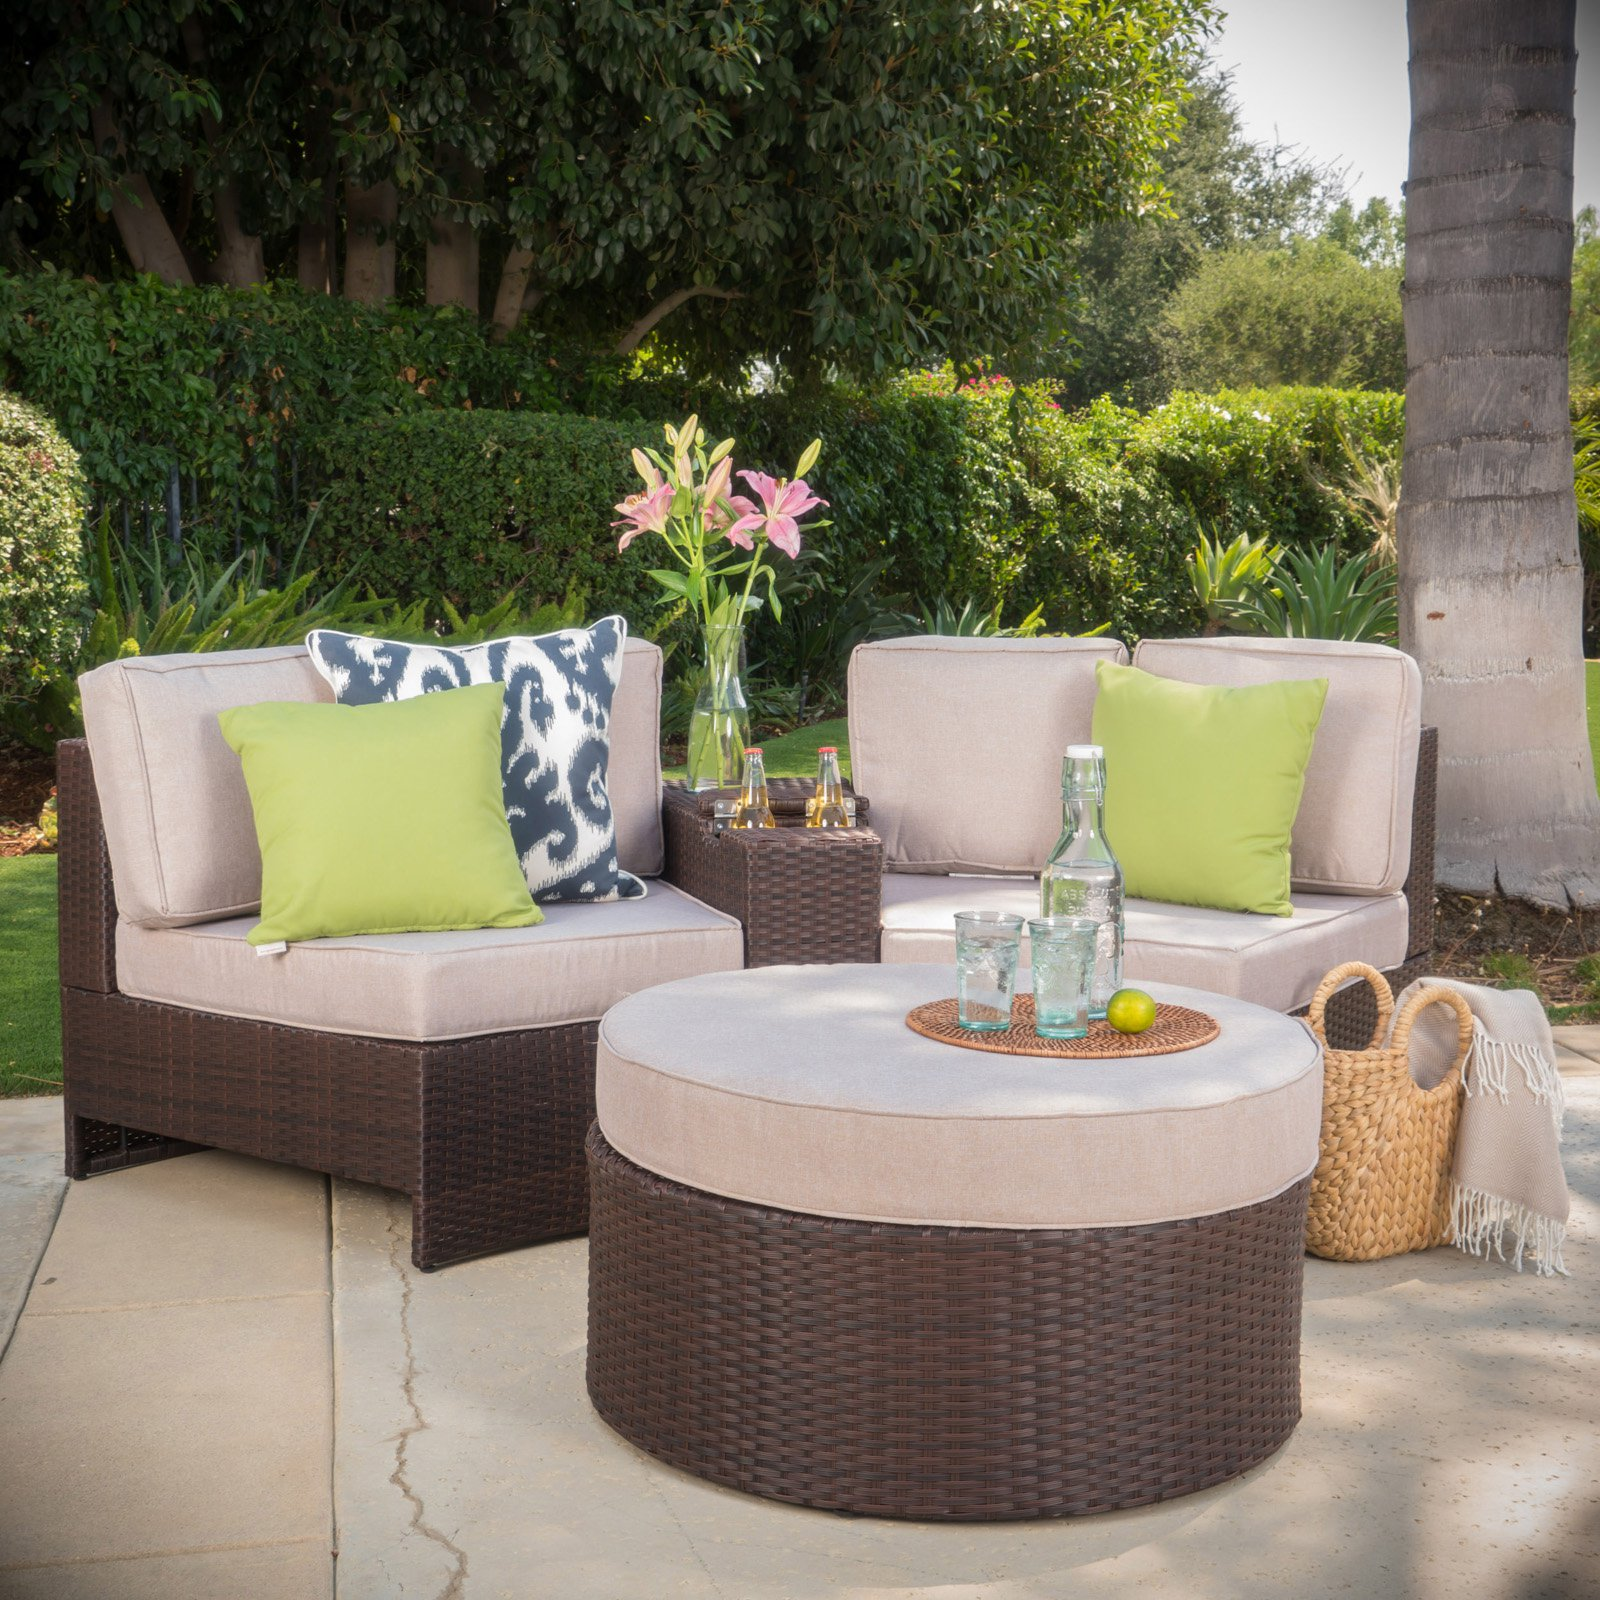 Attirant Ibarra Ibiza Wicker 4 Piece Curved Patio Seating Set With Ottoman